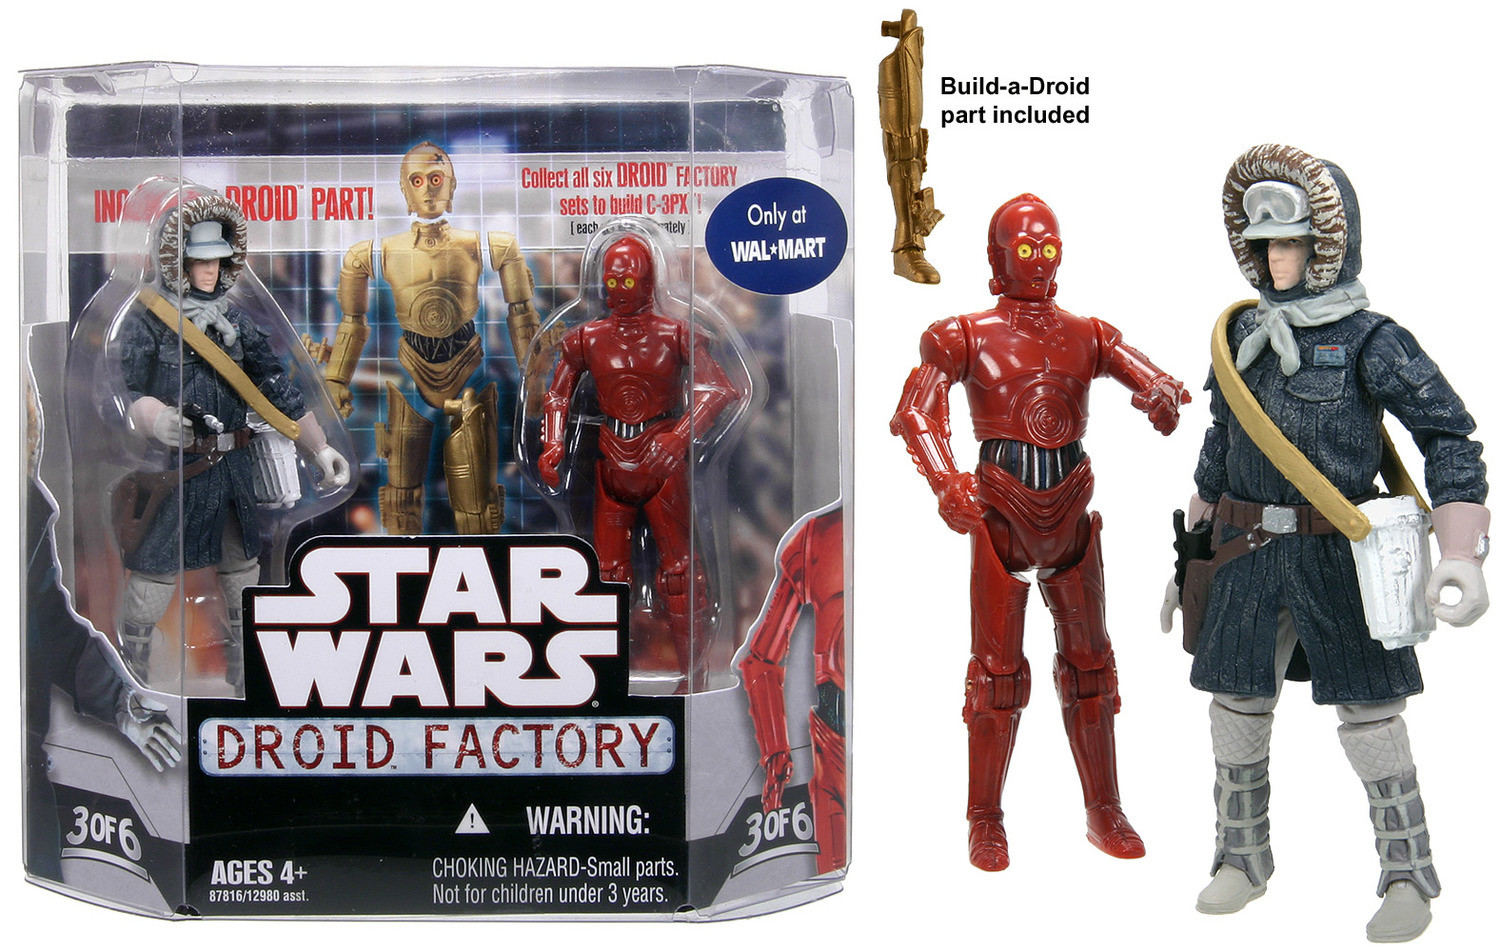 30th-anniversary-collection-tac-droid-factory-3-of-6-han-solo-r-3po-3-of-6.jpg